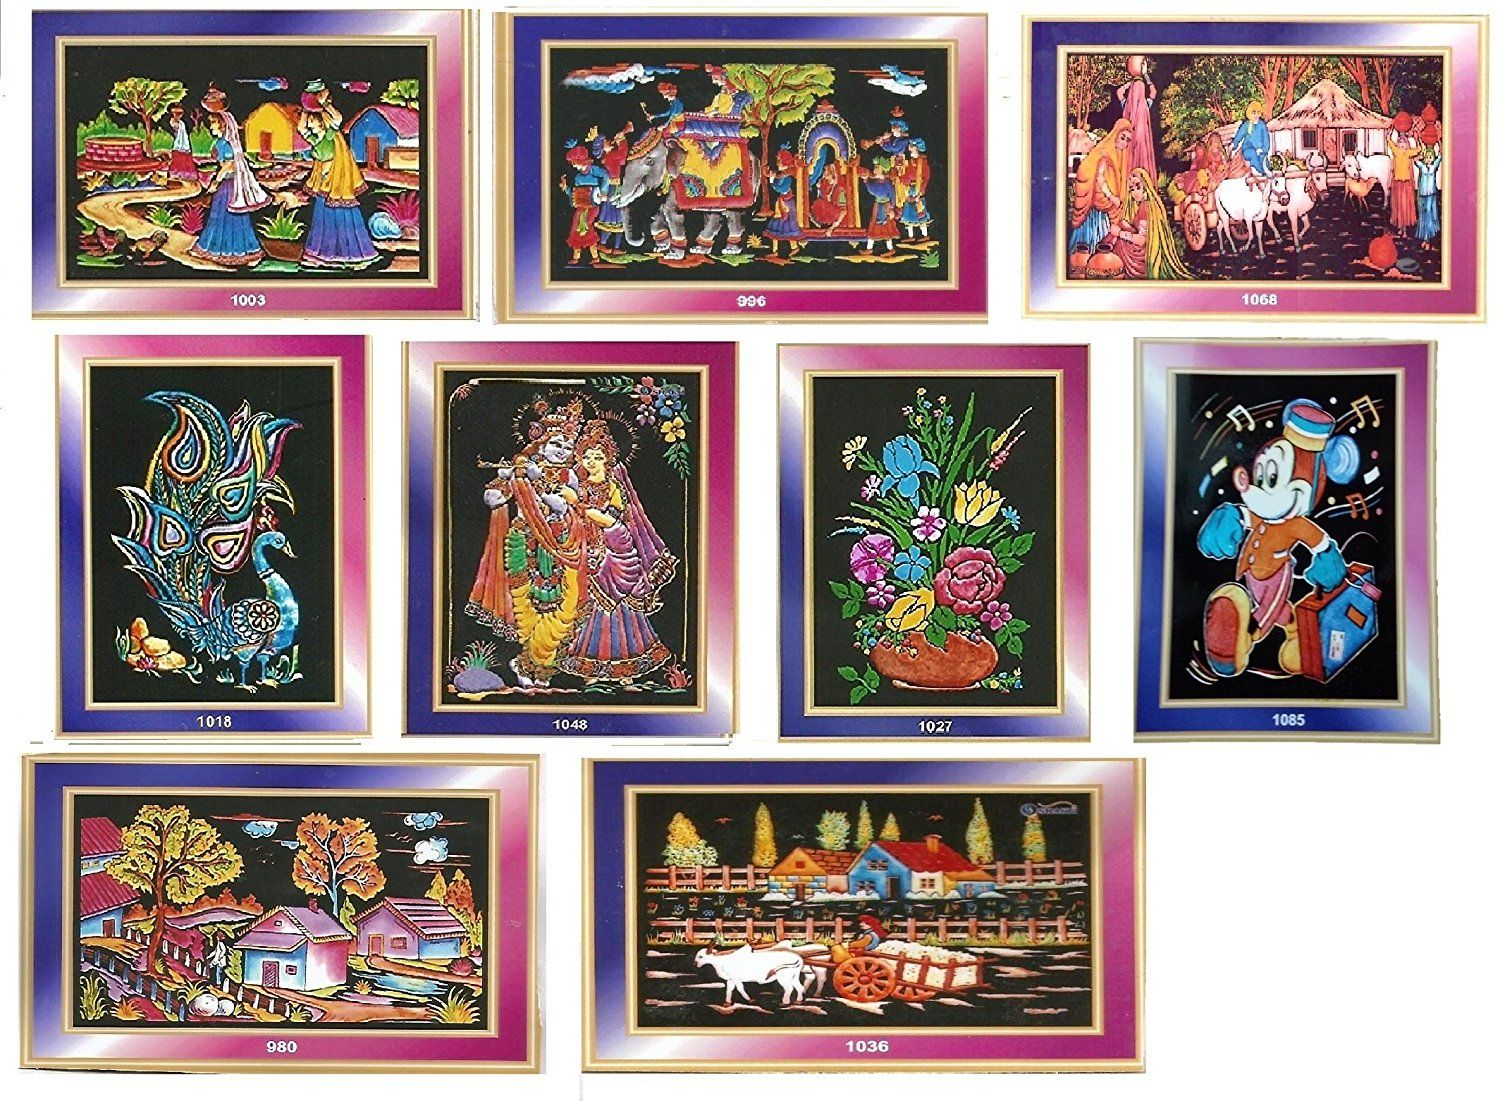 Buy EMBOSS PAINTING KIT 38 X 50 Cm Valvet Cloth PACK OF NINE FOR BIRTHDAY RETURN GIFT Online At Low Prices In India